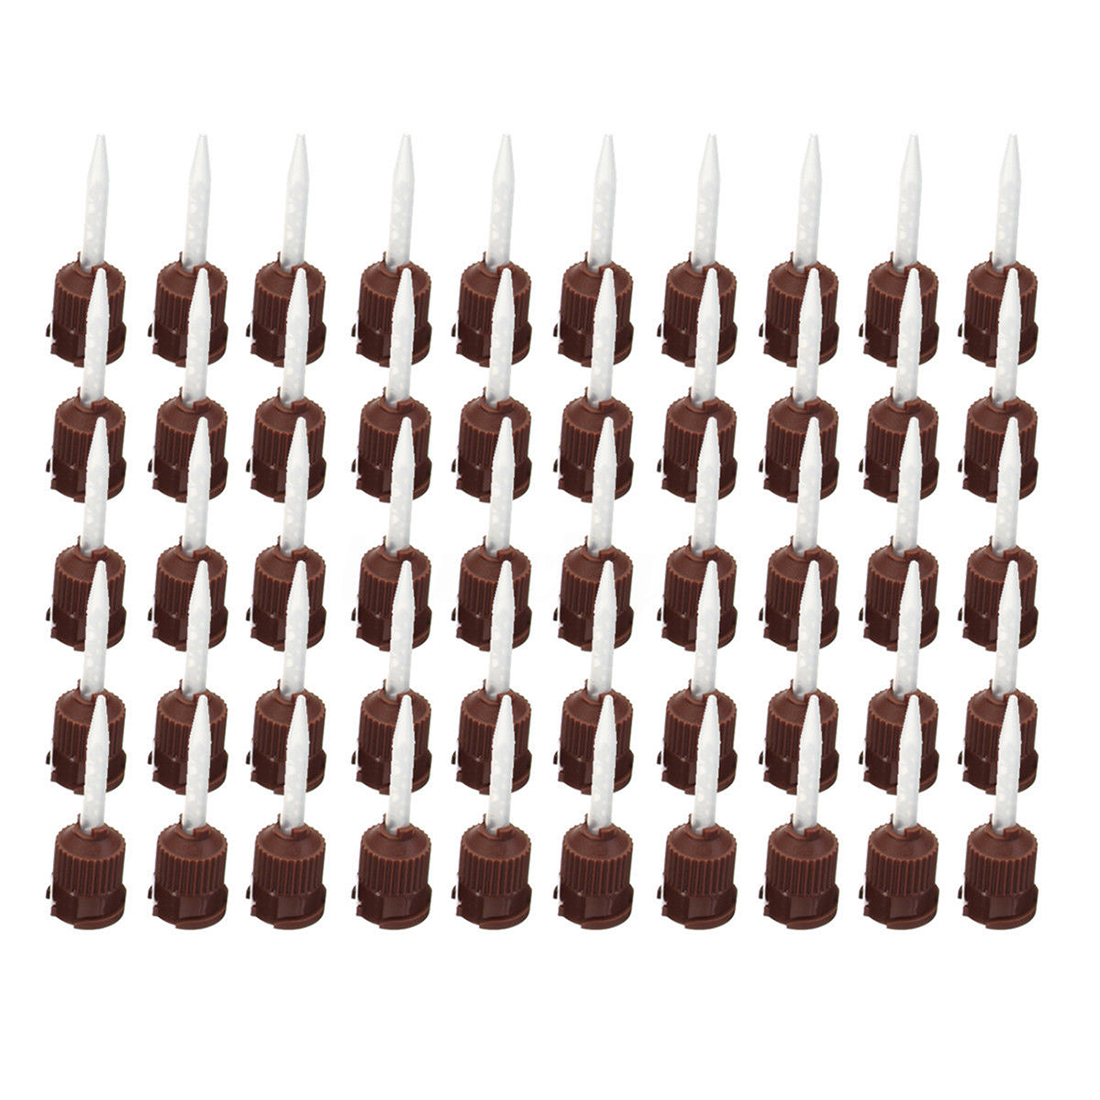 In Stock  ELEG-50x Dental Impression Tip Temporary 1: 1 Silicone Rubber 50X Brown Straight Tip